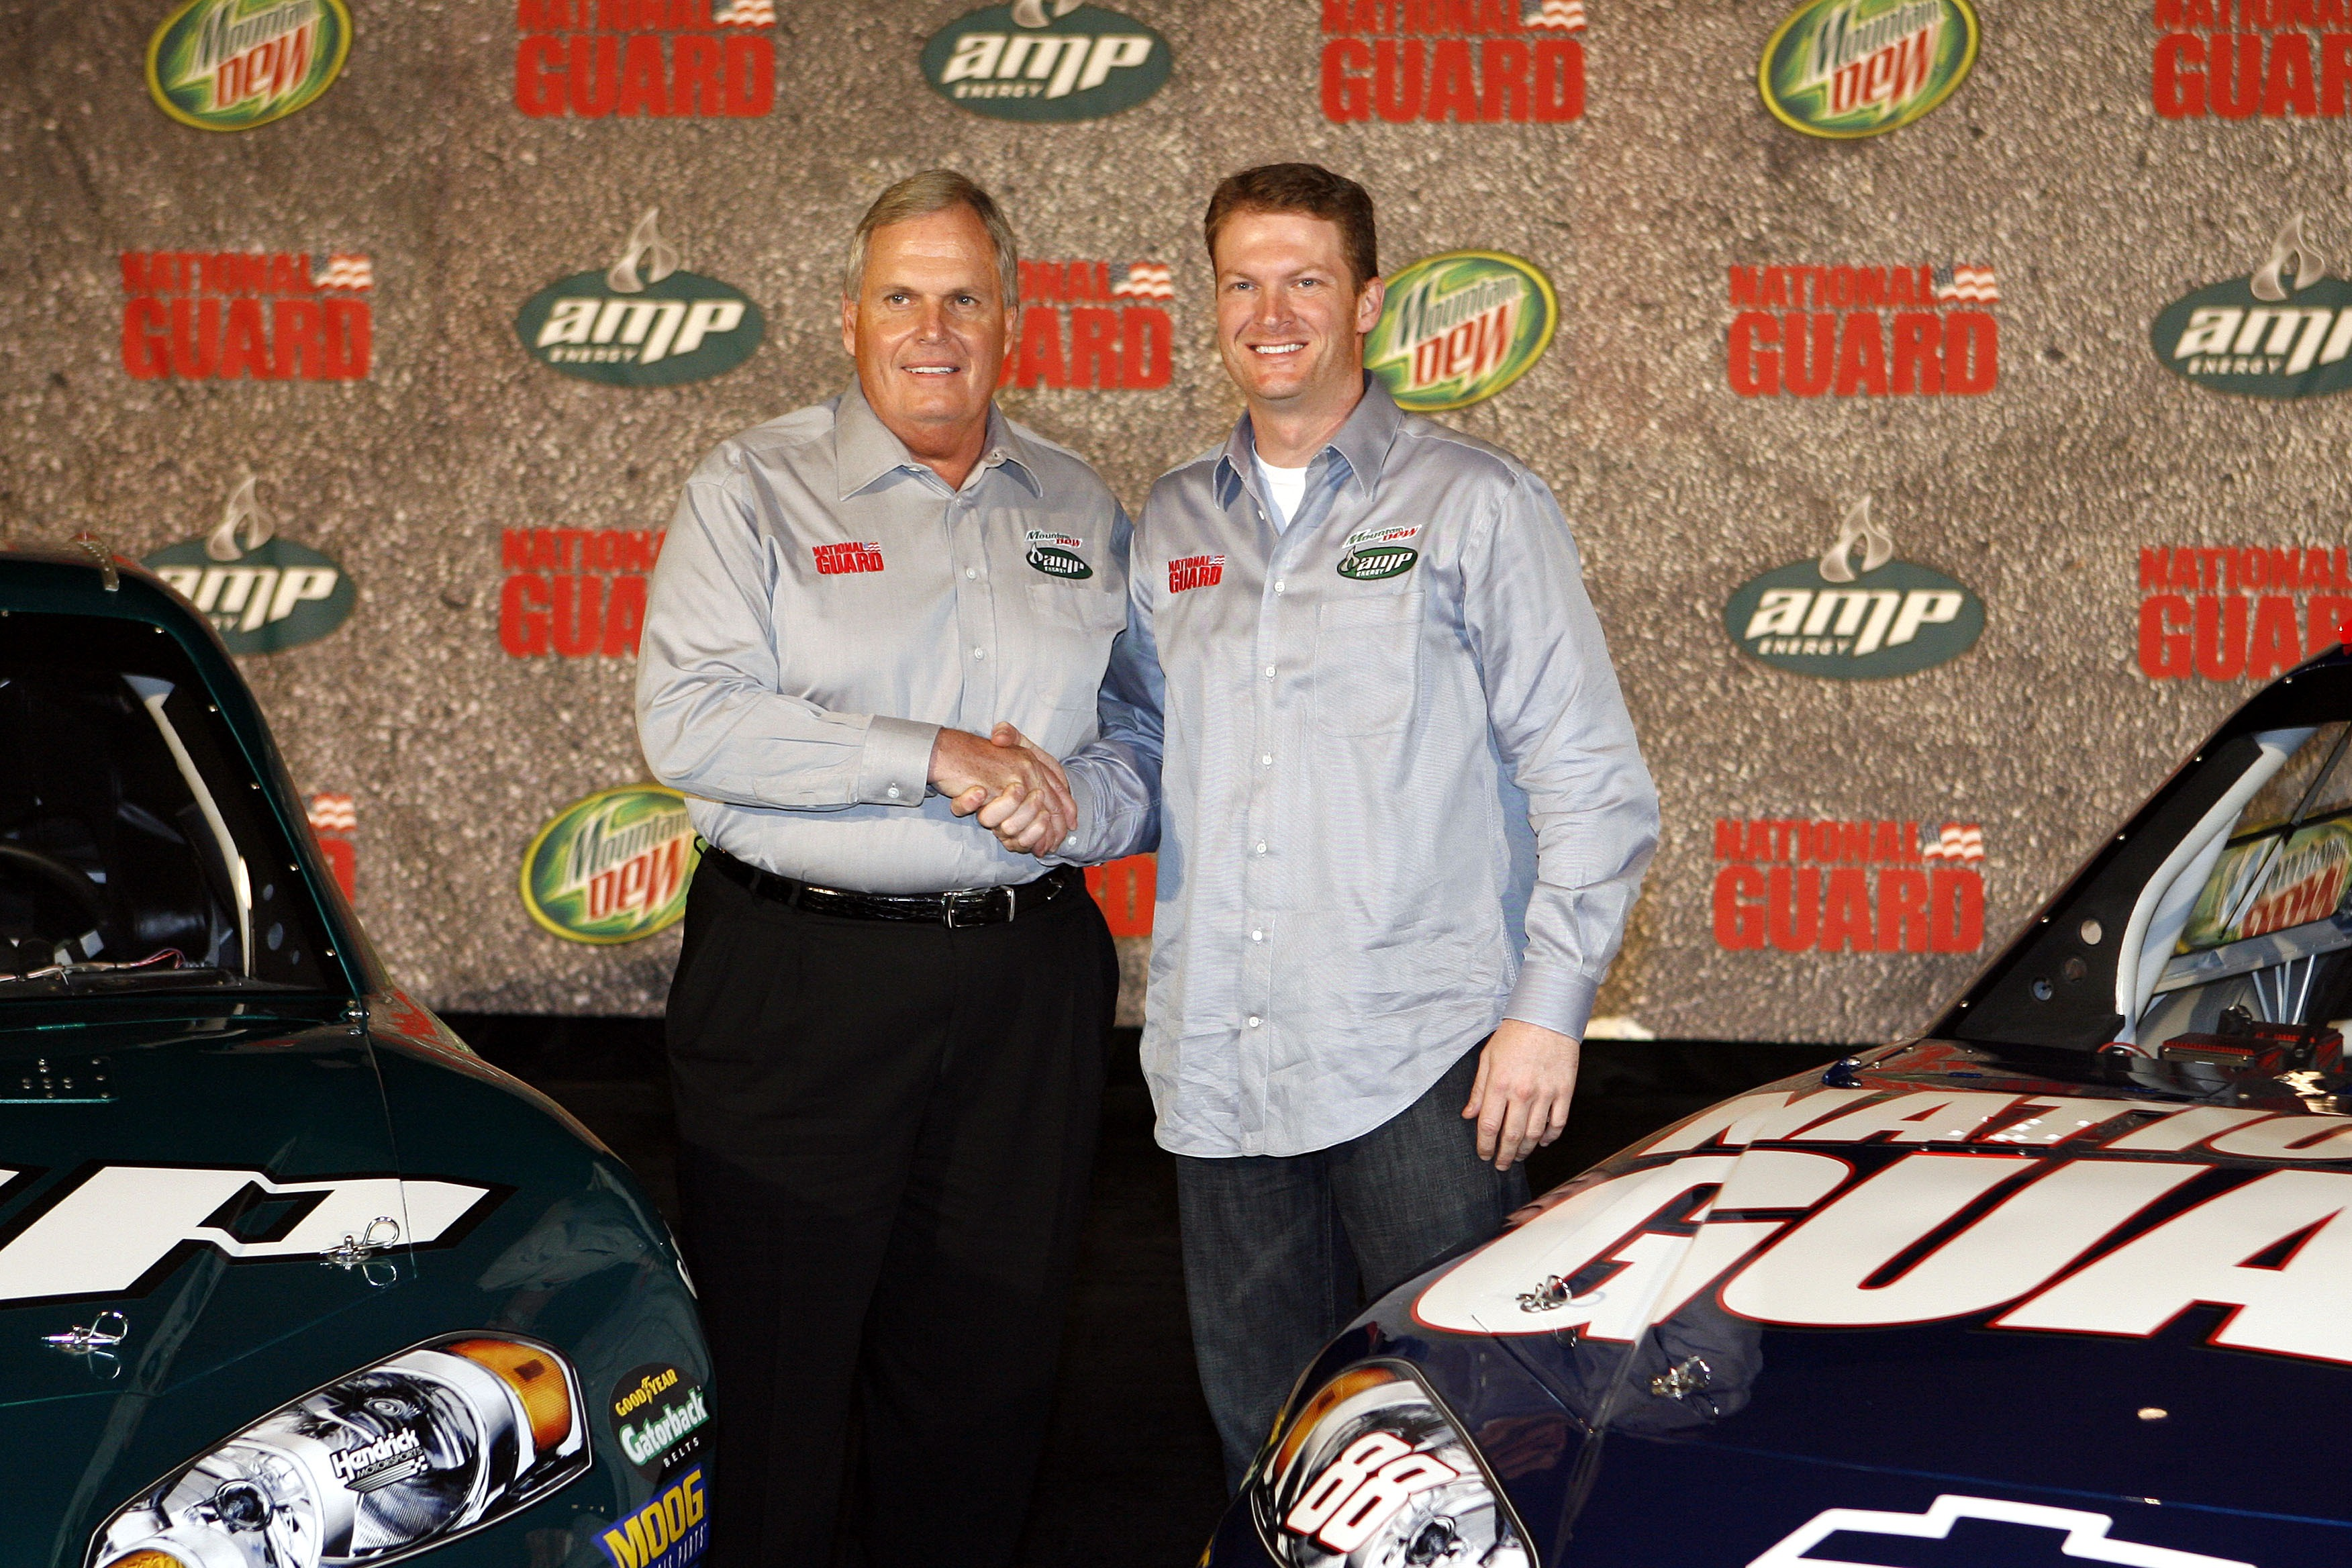 DALLAS, TX - SEPTEMBER 19: Dale Earnhardt Jr. (R) of the Hendrick Motorsports Racing Team poses with Rick Hendrick and his new cars on September 19, 2007 at the Dallas Convention Center in Dallas, Texas. (Photo by Layne Murdoch/Getty Images) | Getty Images